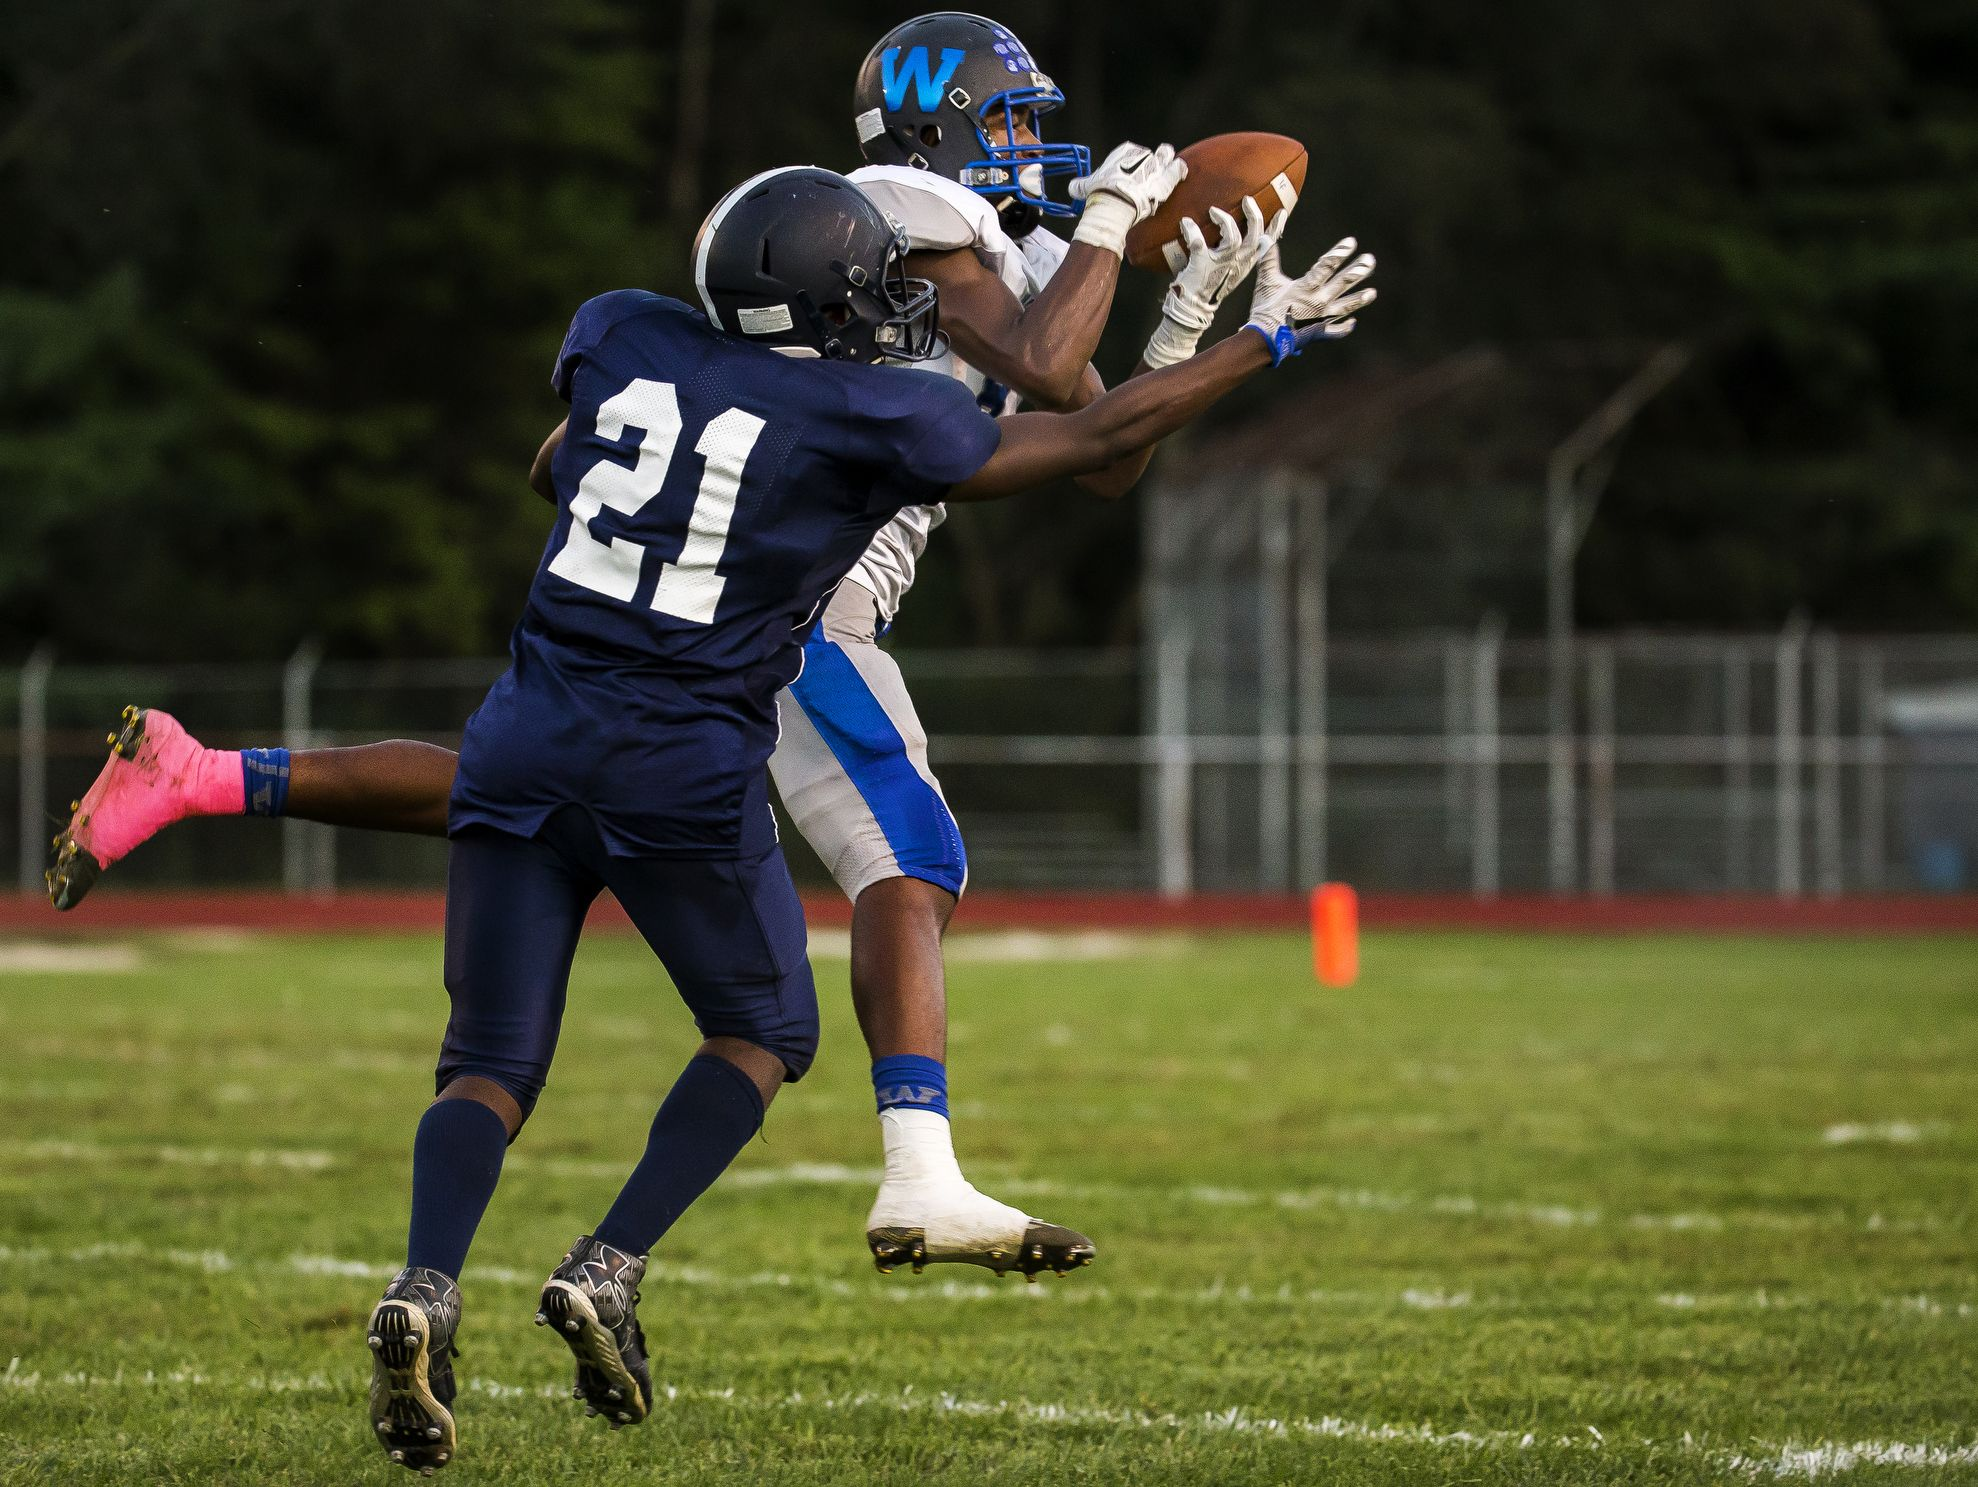 Woodbridge's Jamon Kane intercepts a pass intended for Lake Forest's Ondre Sheppard (No. 21) in the second quarter of Woodbridge's 32-0 win over Lake Forest at Lake Forest High School in Felton on Monday evening. Kane returned the interception for a touchdown.